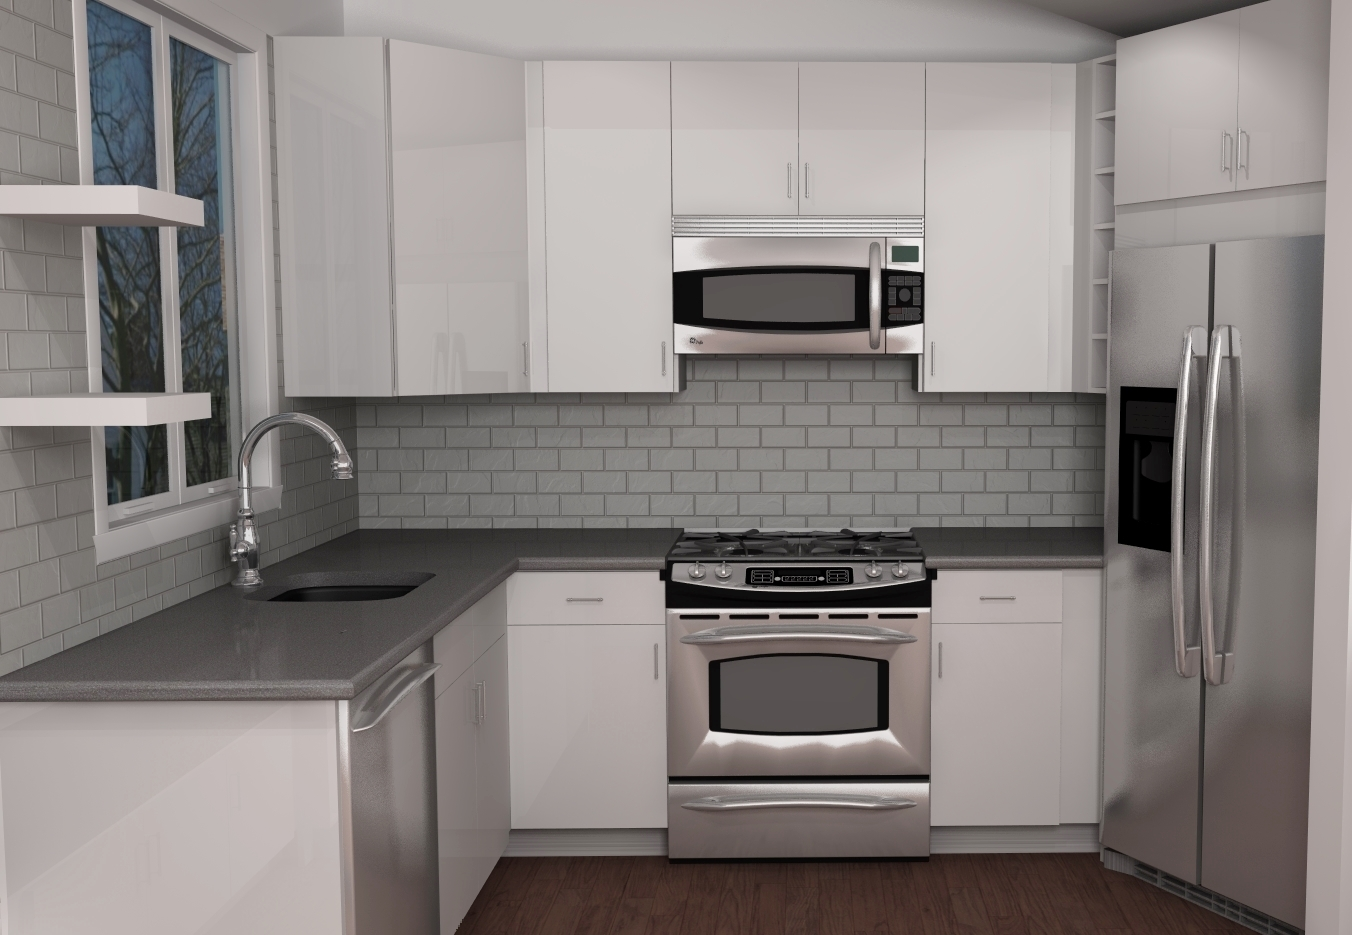 5 Simple Tips To Increase Counter Space At Your Kitchen